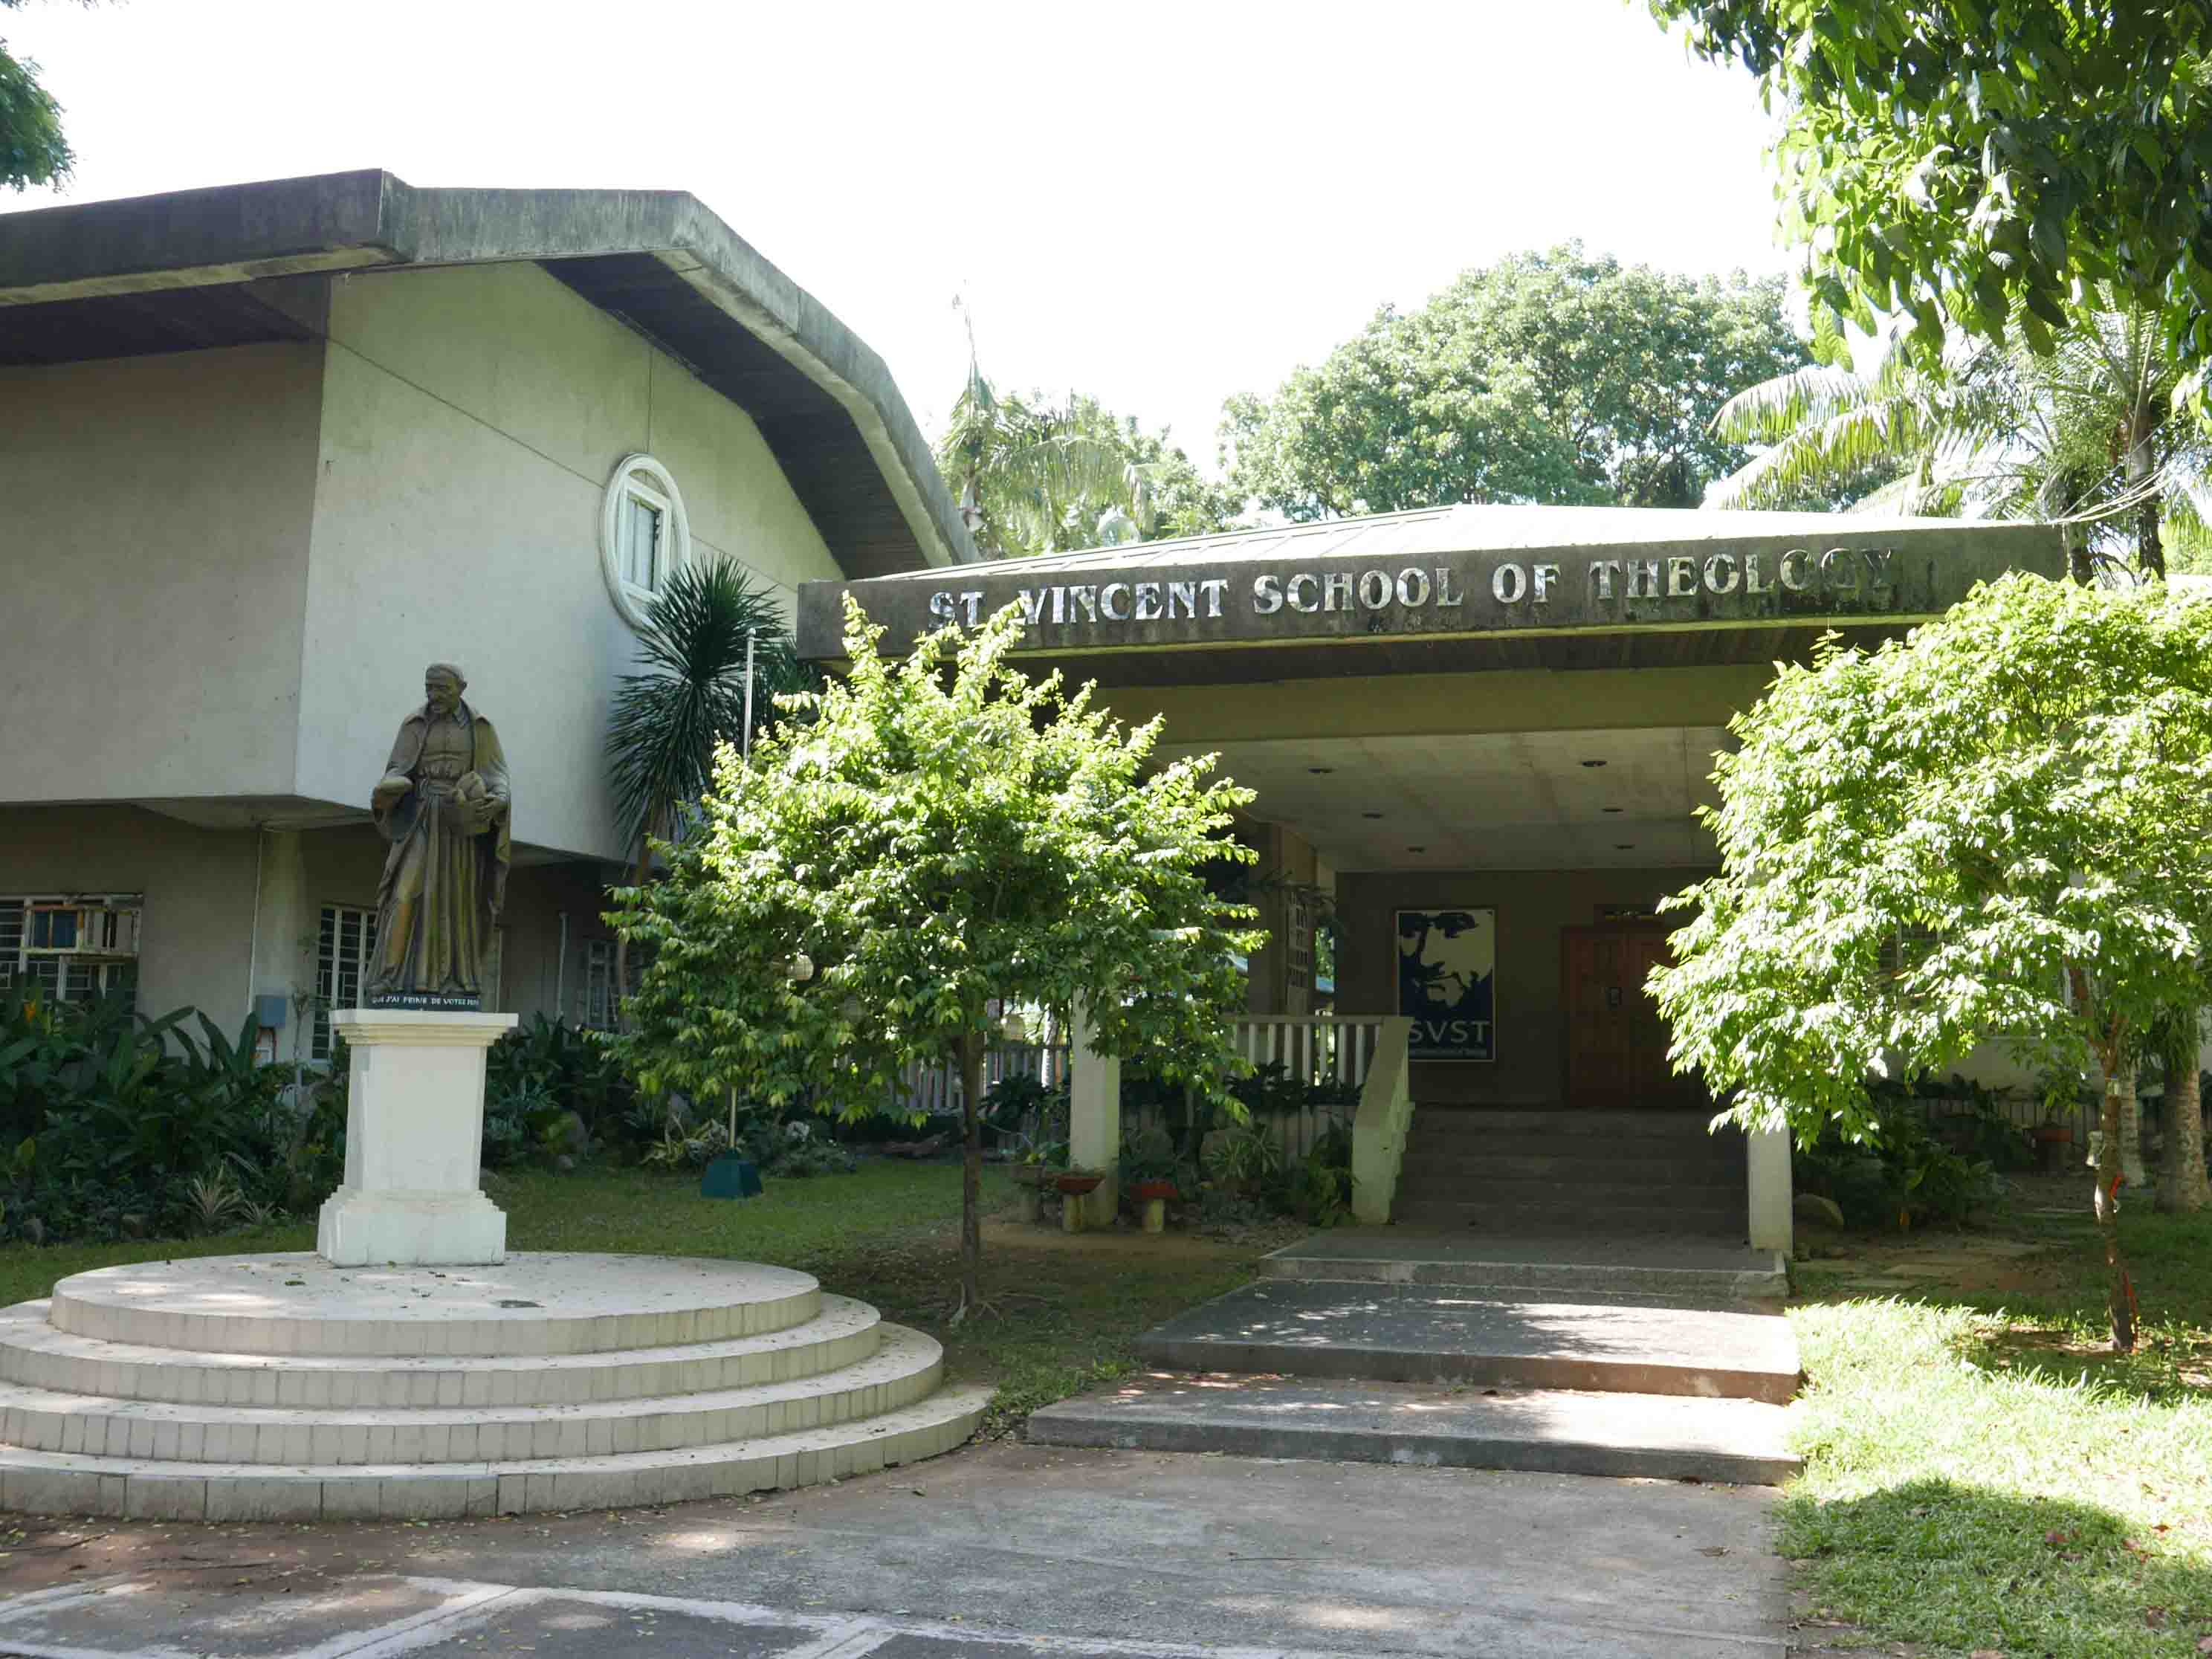 St Vincent School of Theology, Tandang Sora, Quezon City